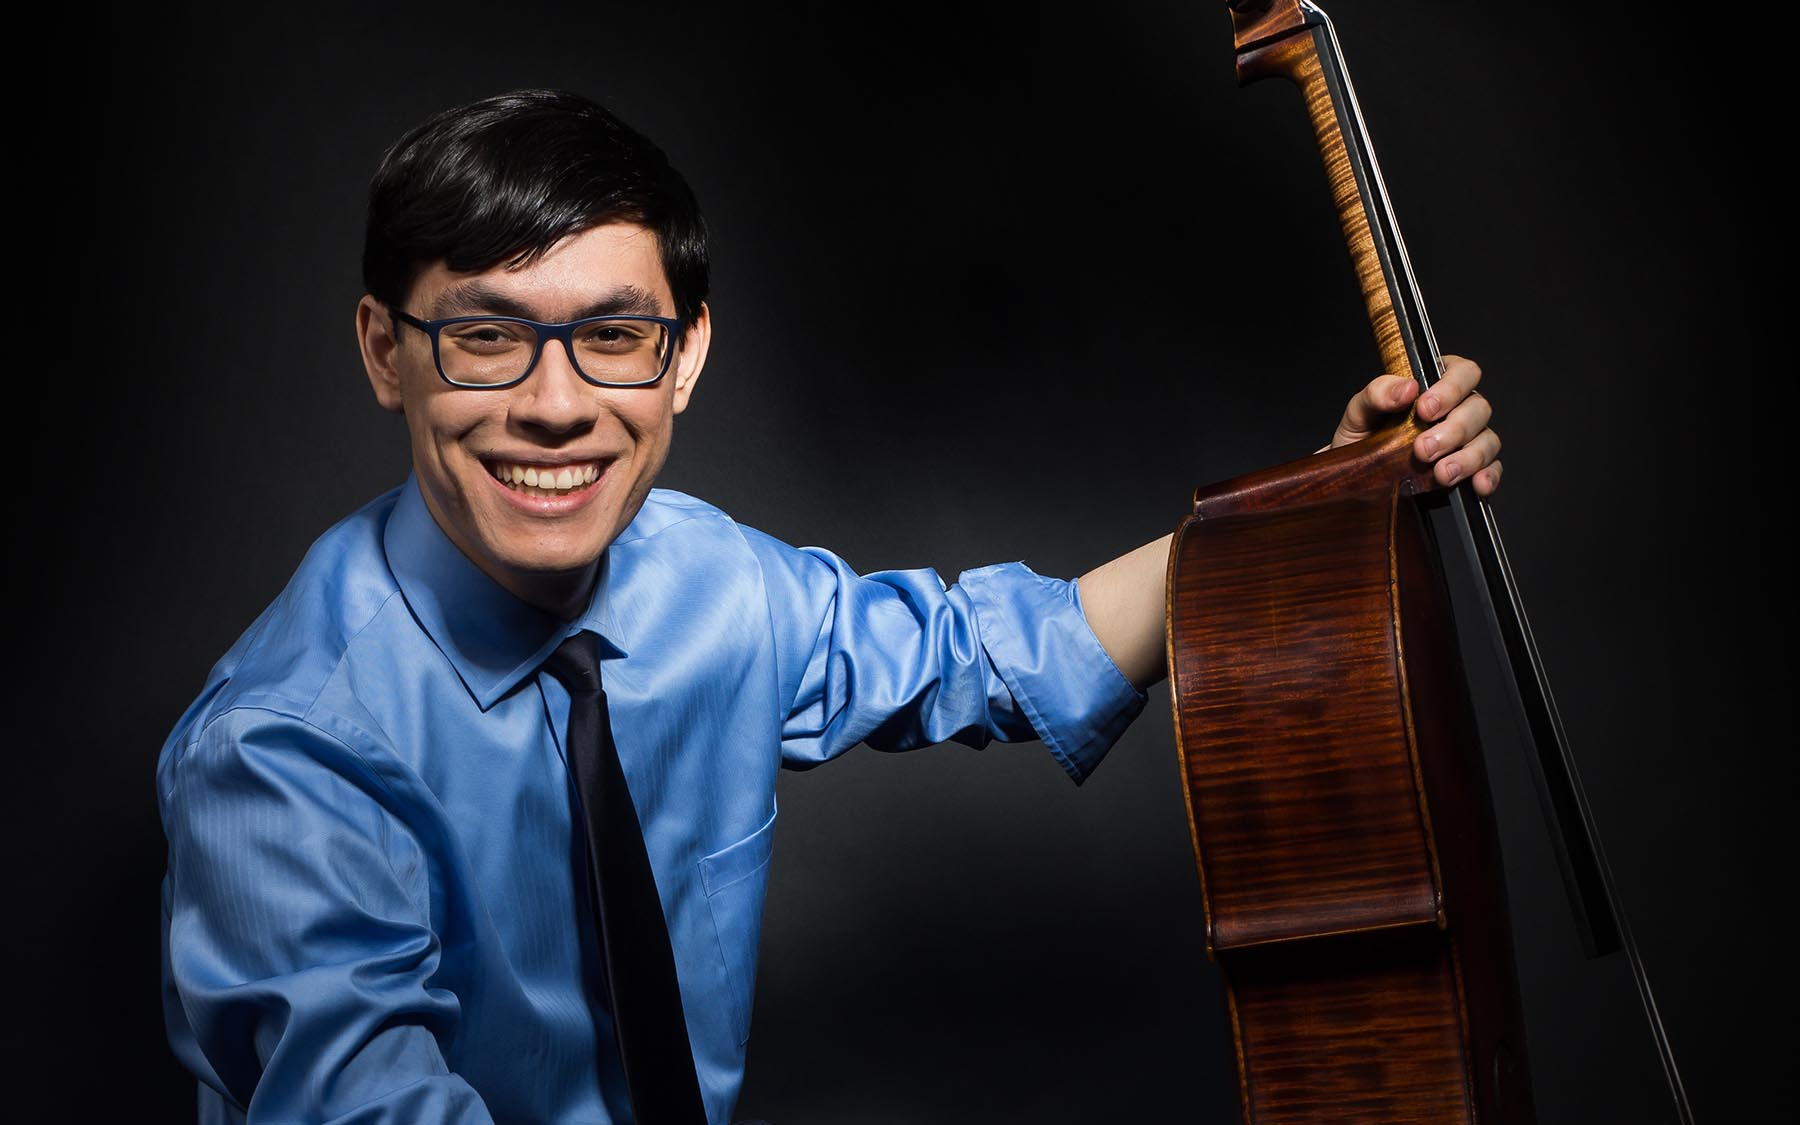 photo of Zlatomir Fung with cello